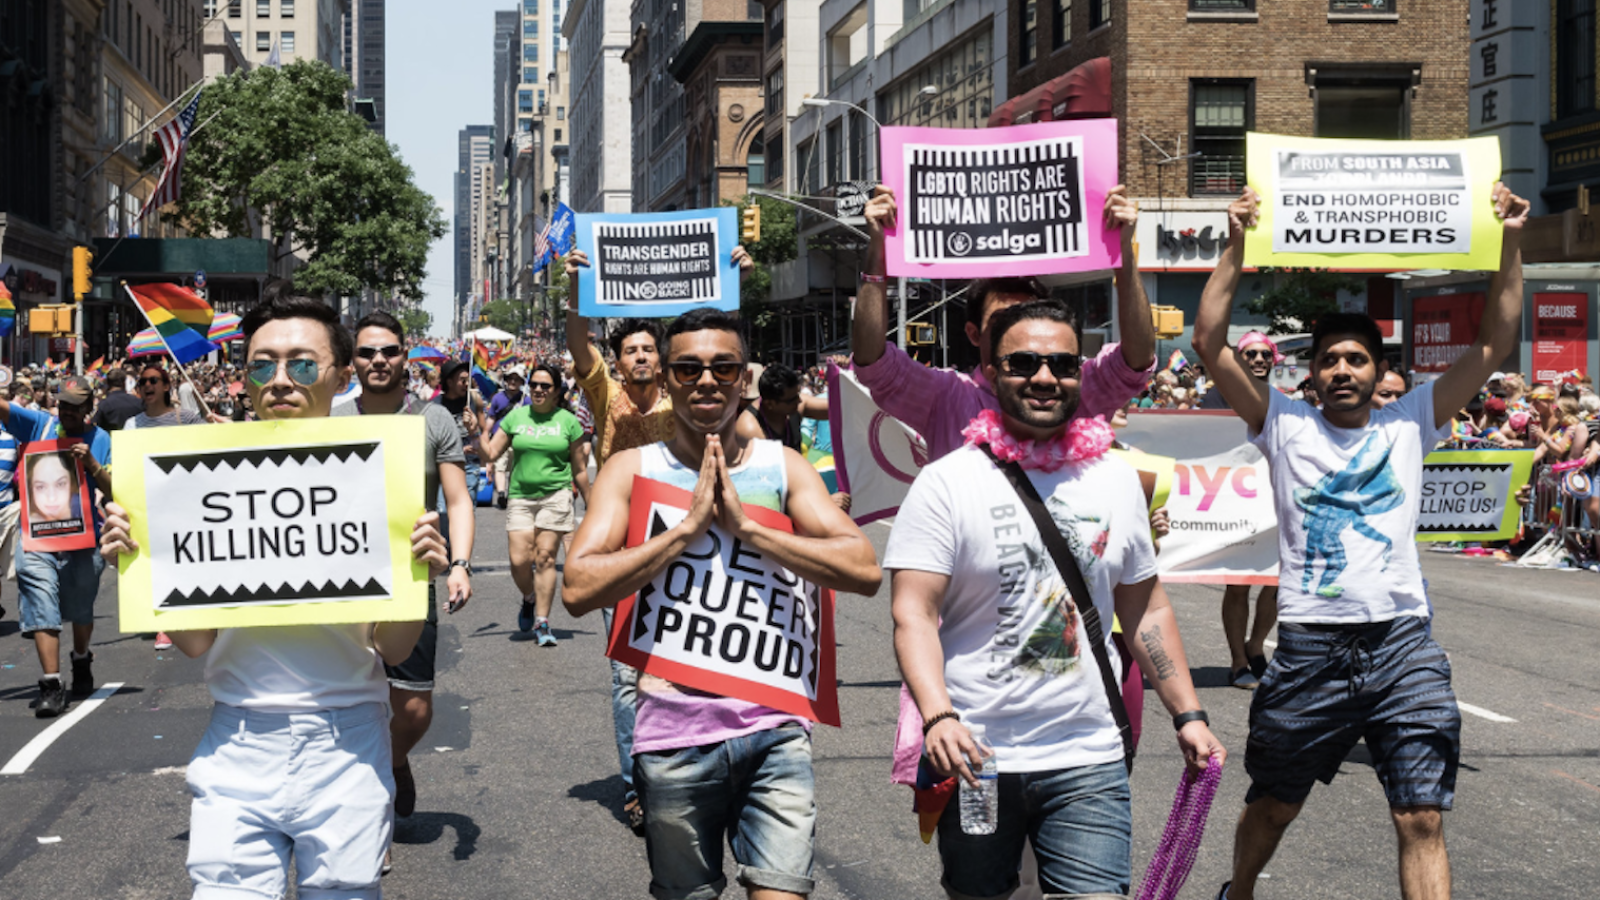 A group of men dressed in rainbow colors walk along a street, carrying signs with anti-homophobia messages.